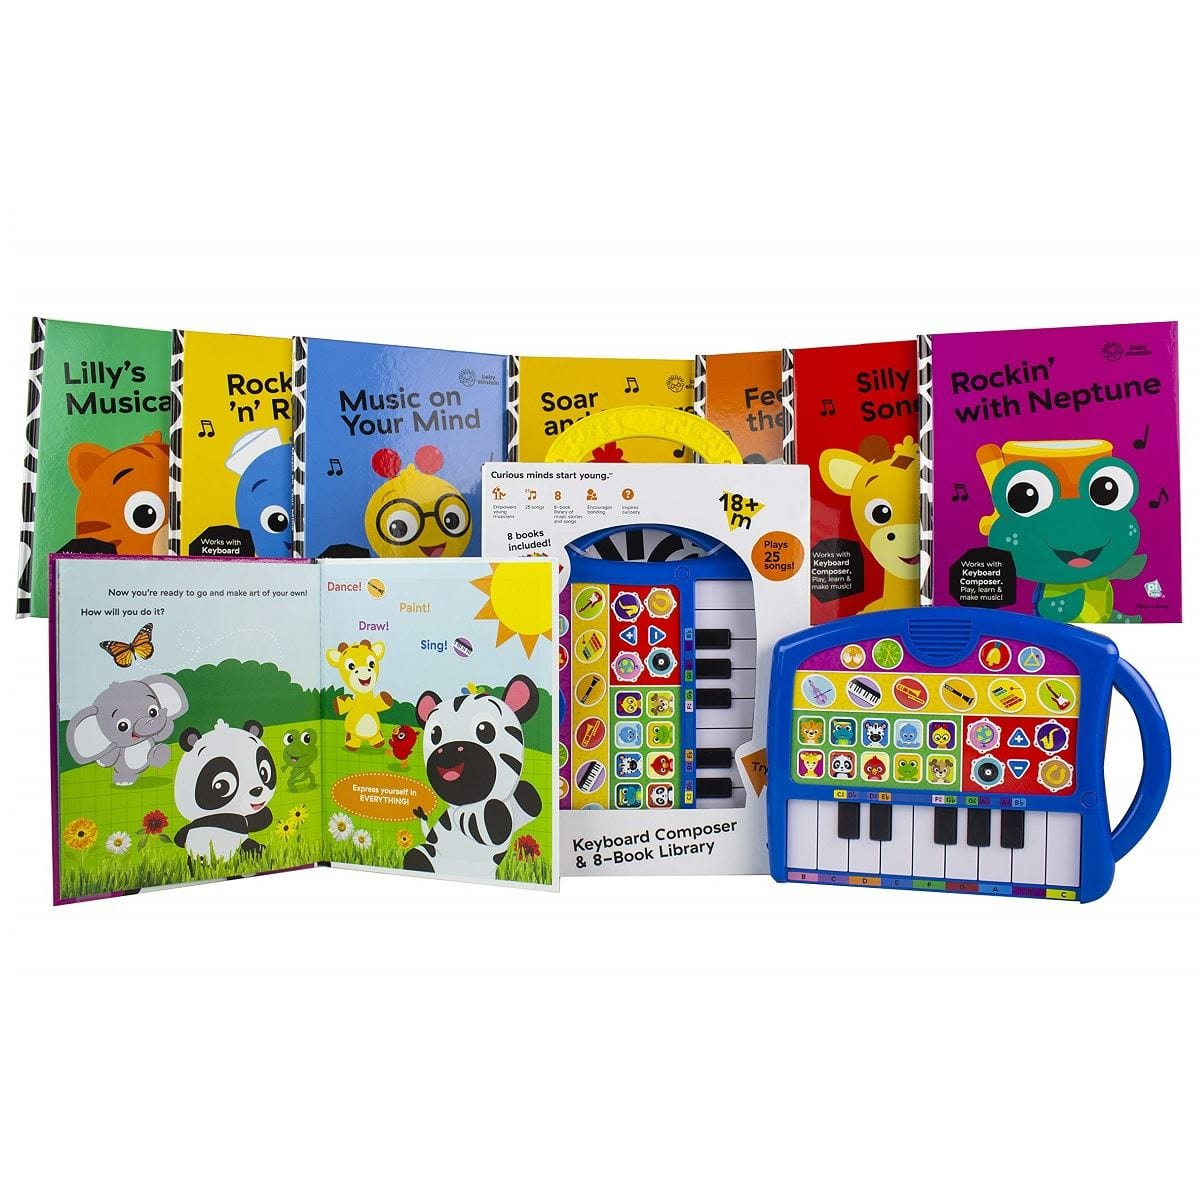 Baby Einstein - Keyboard Composer and 8-Book Library